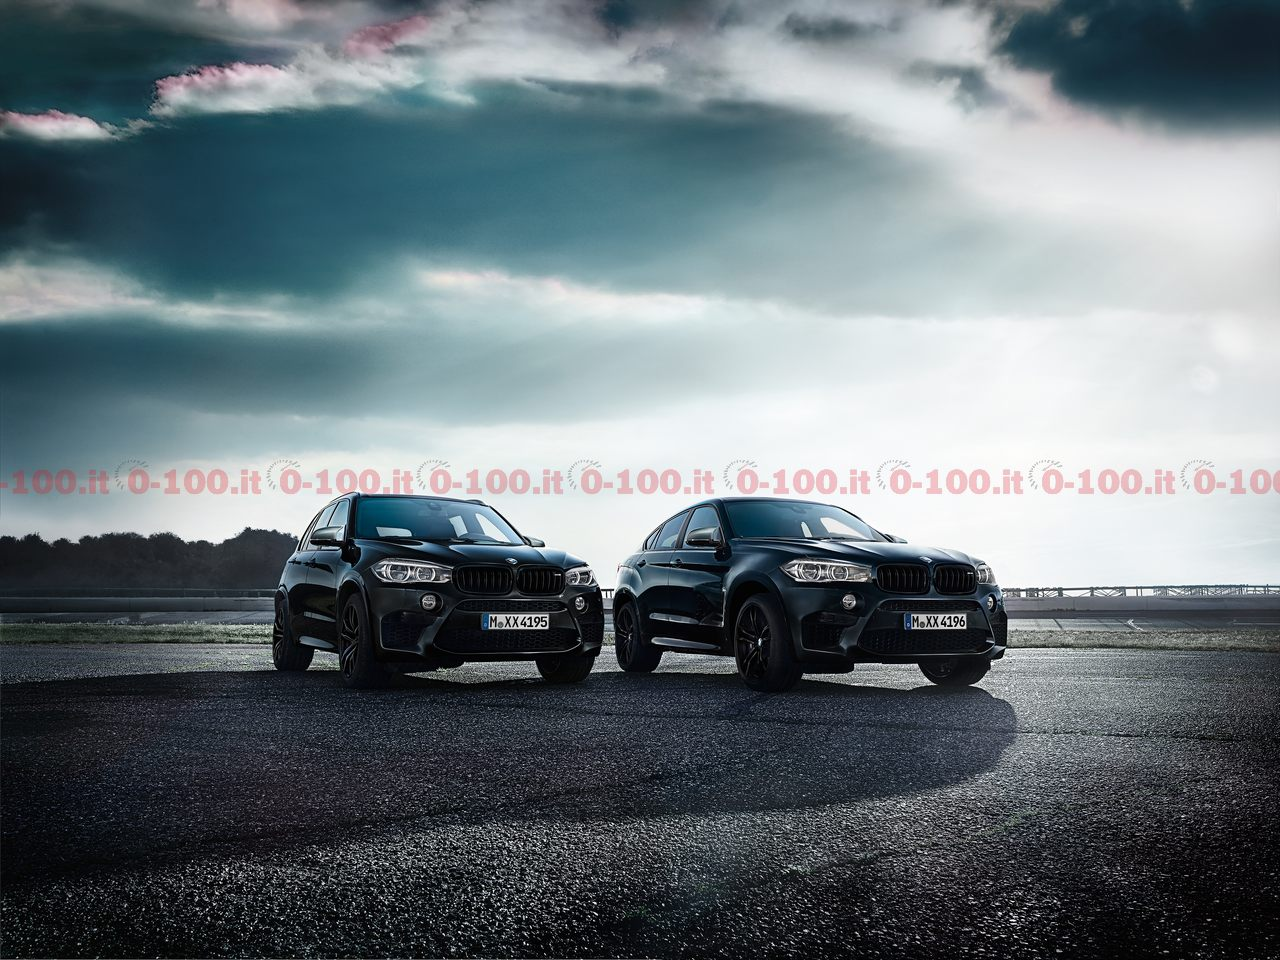 BMW_X5M-X6M-black-fire-edition_0-100_2